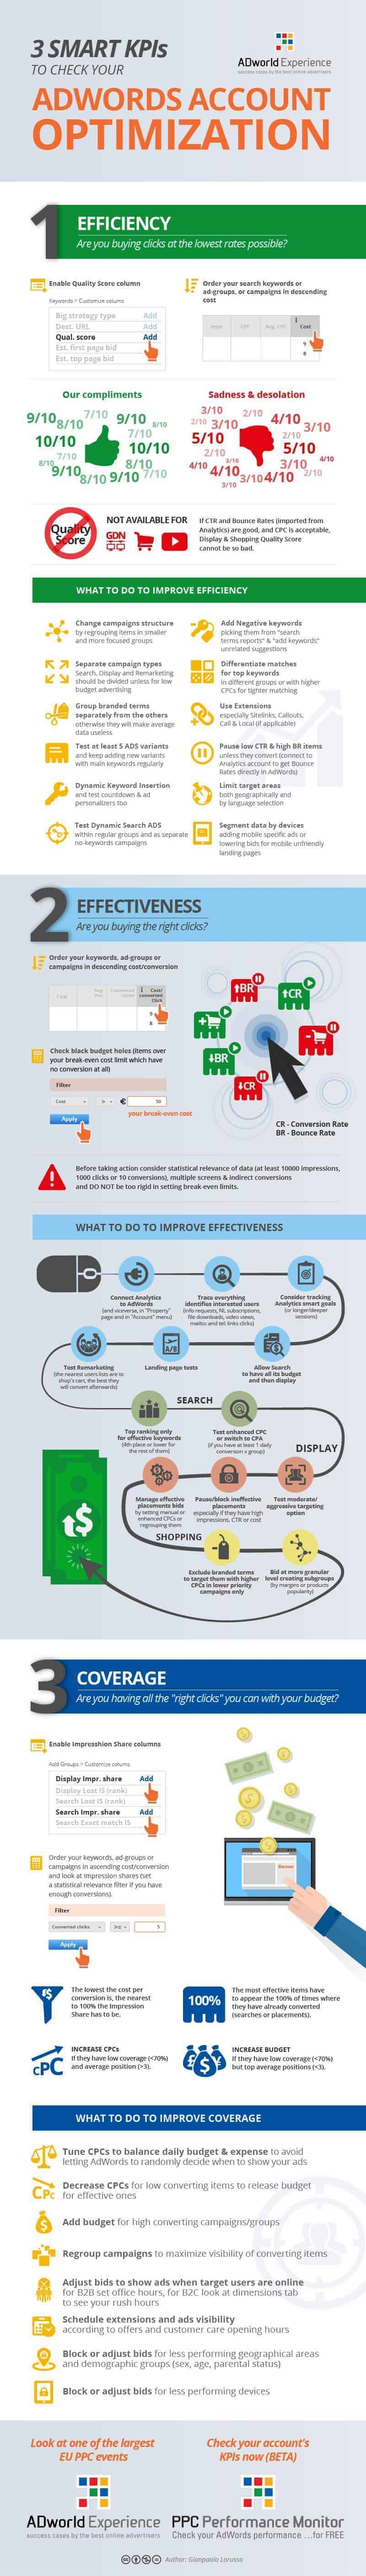 free adwords tips